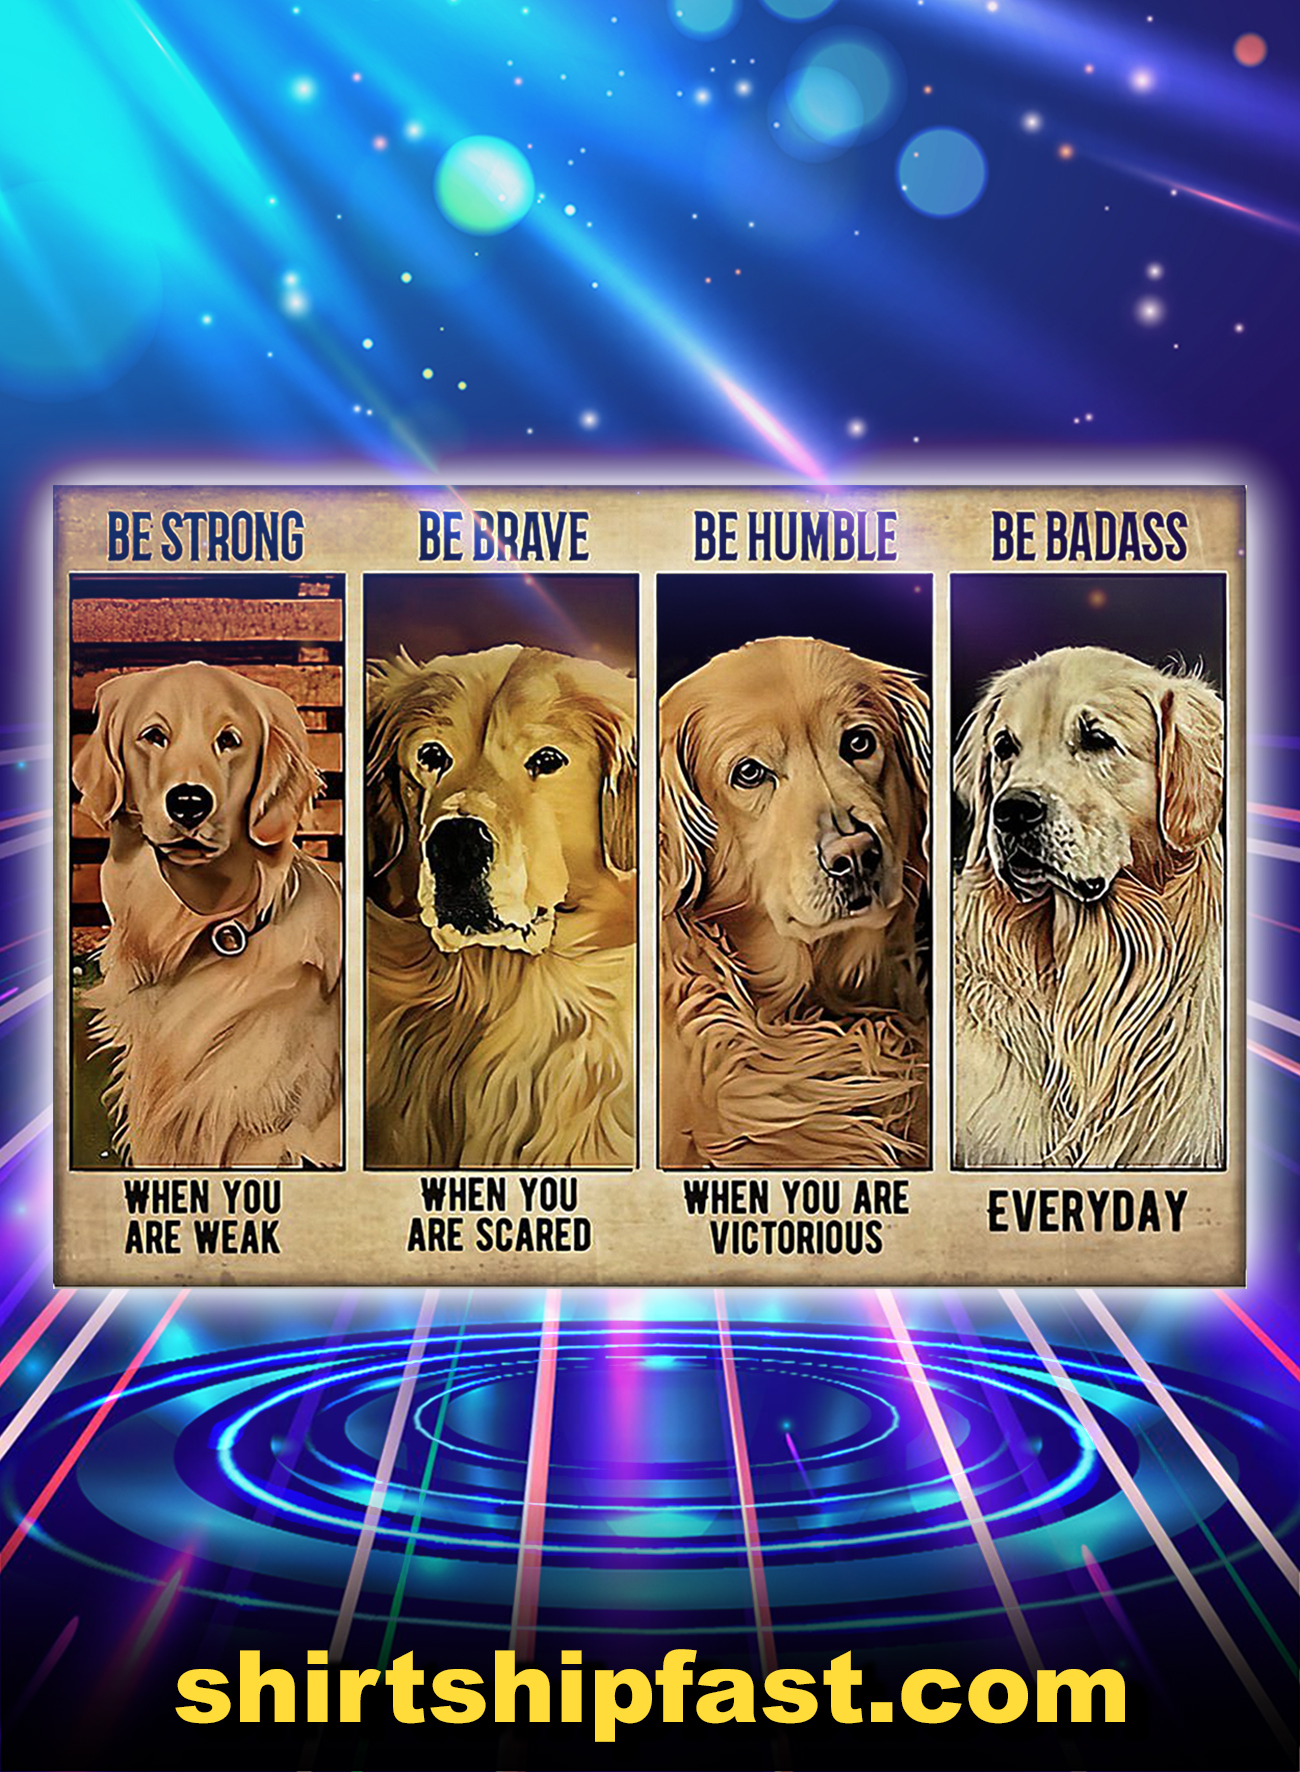 Golden Retriever be strong be brave be humble be badass poster - A1